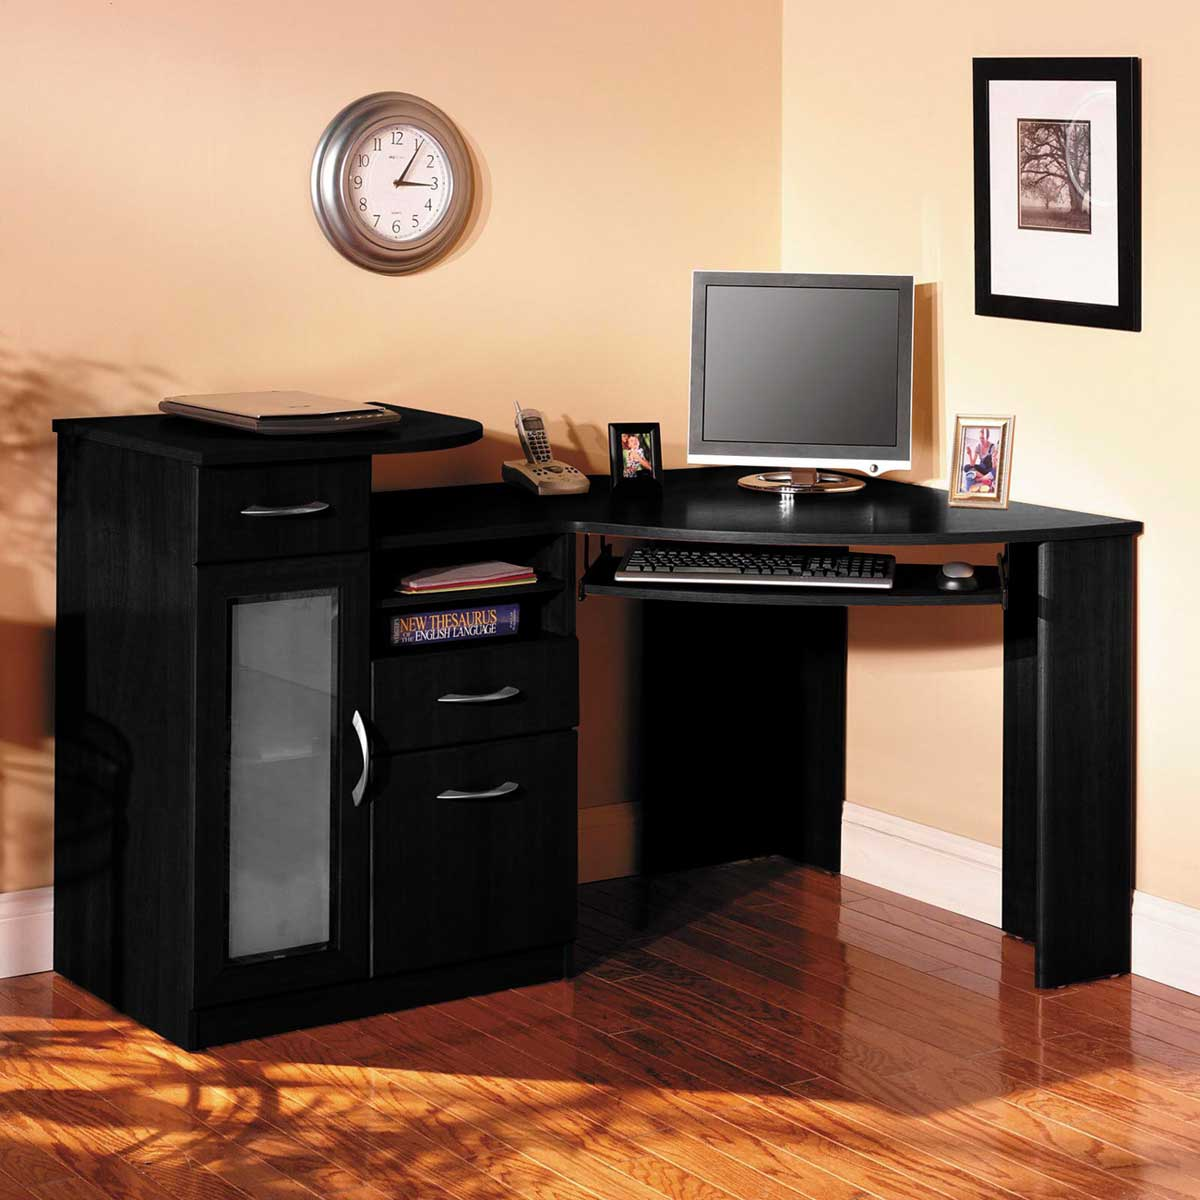 Bush vantage black corner computer desk